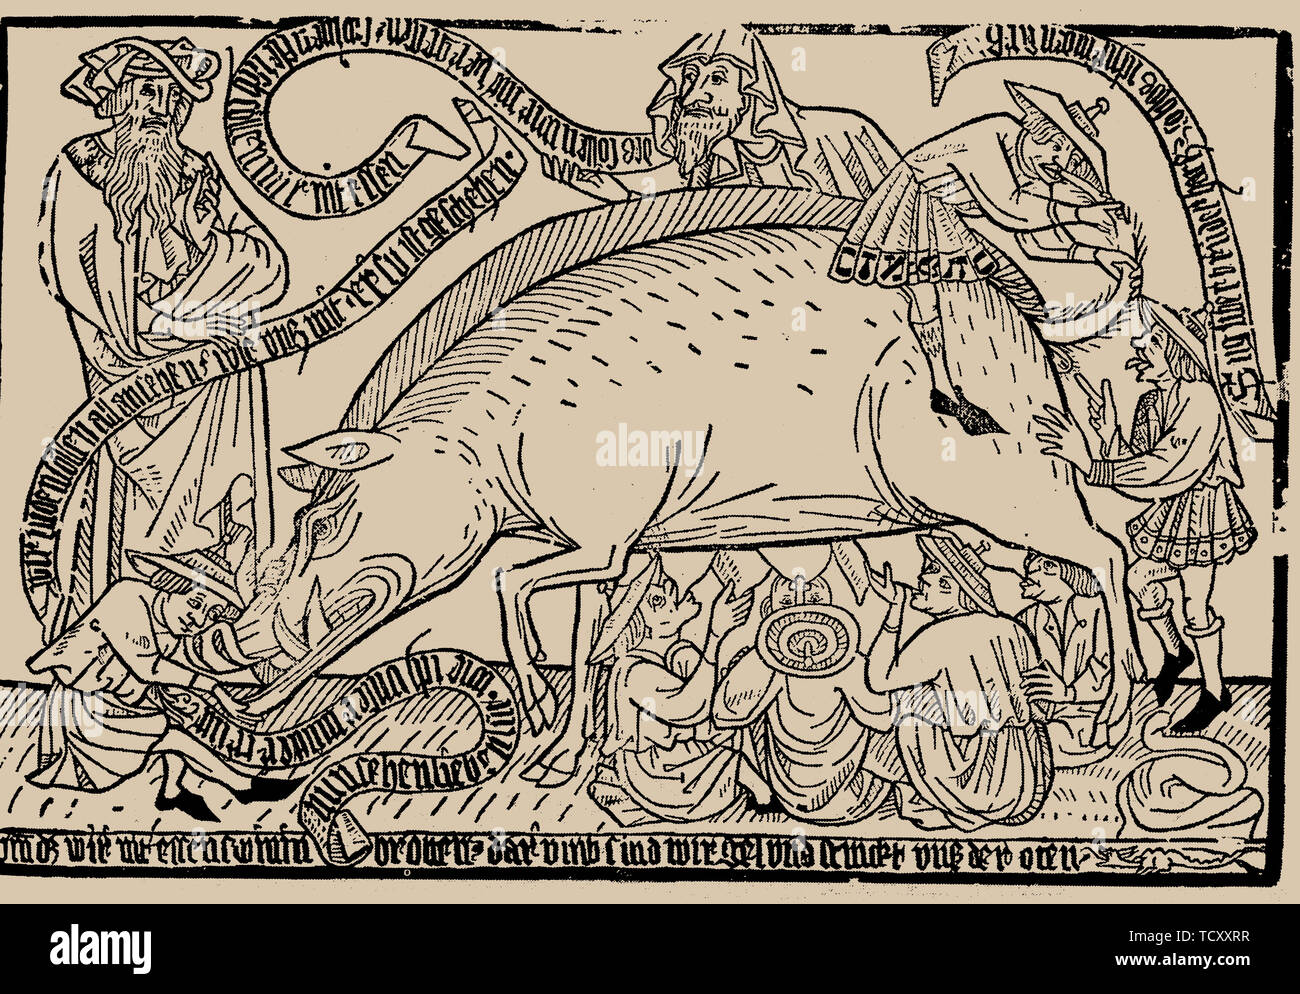 Judensau (Jews' sow), ca 1470. Private Collection. - Stock Image